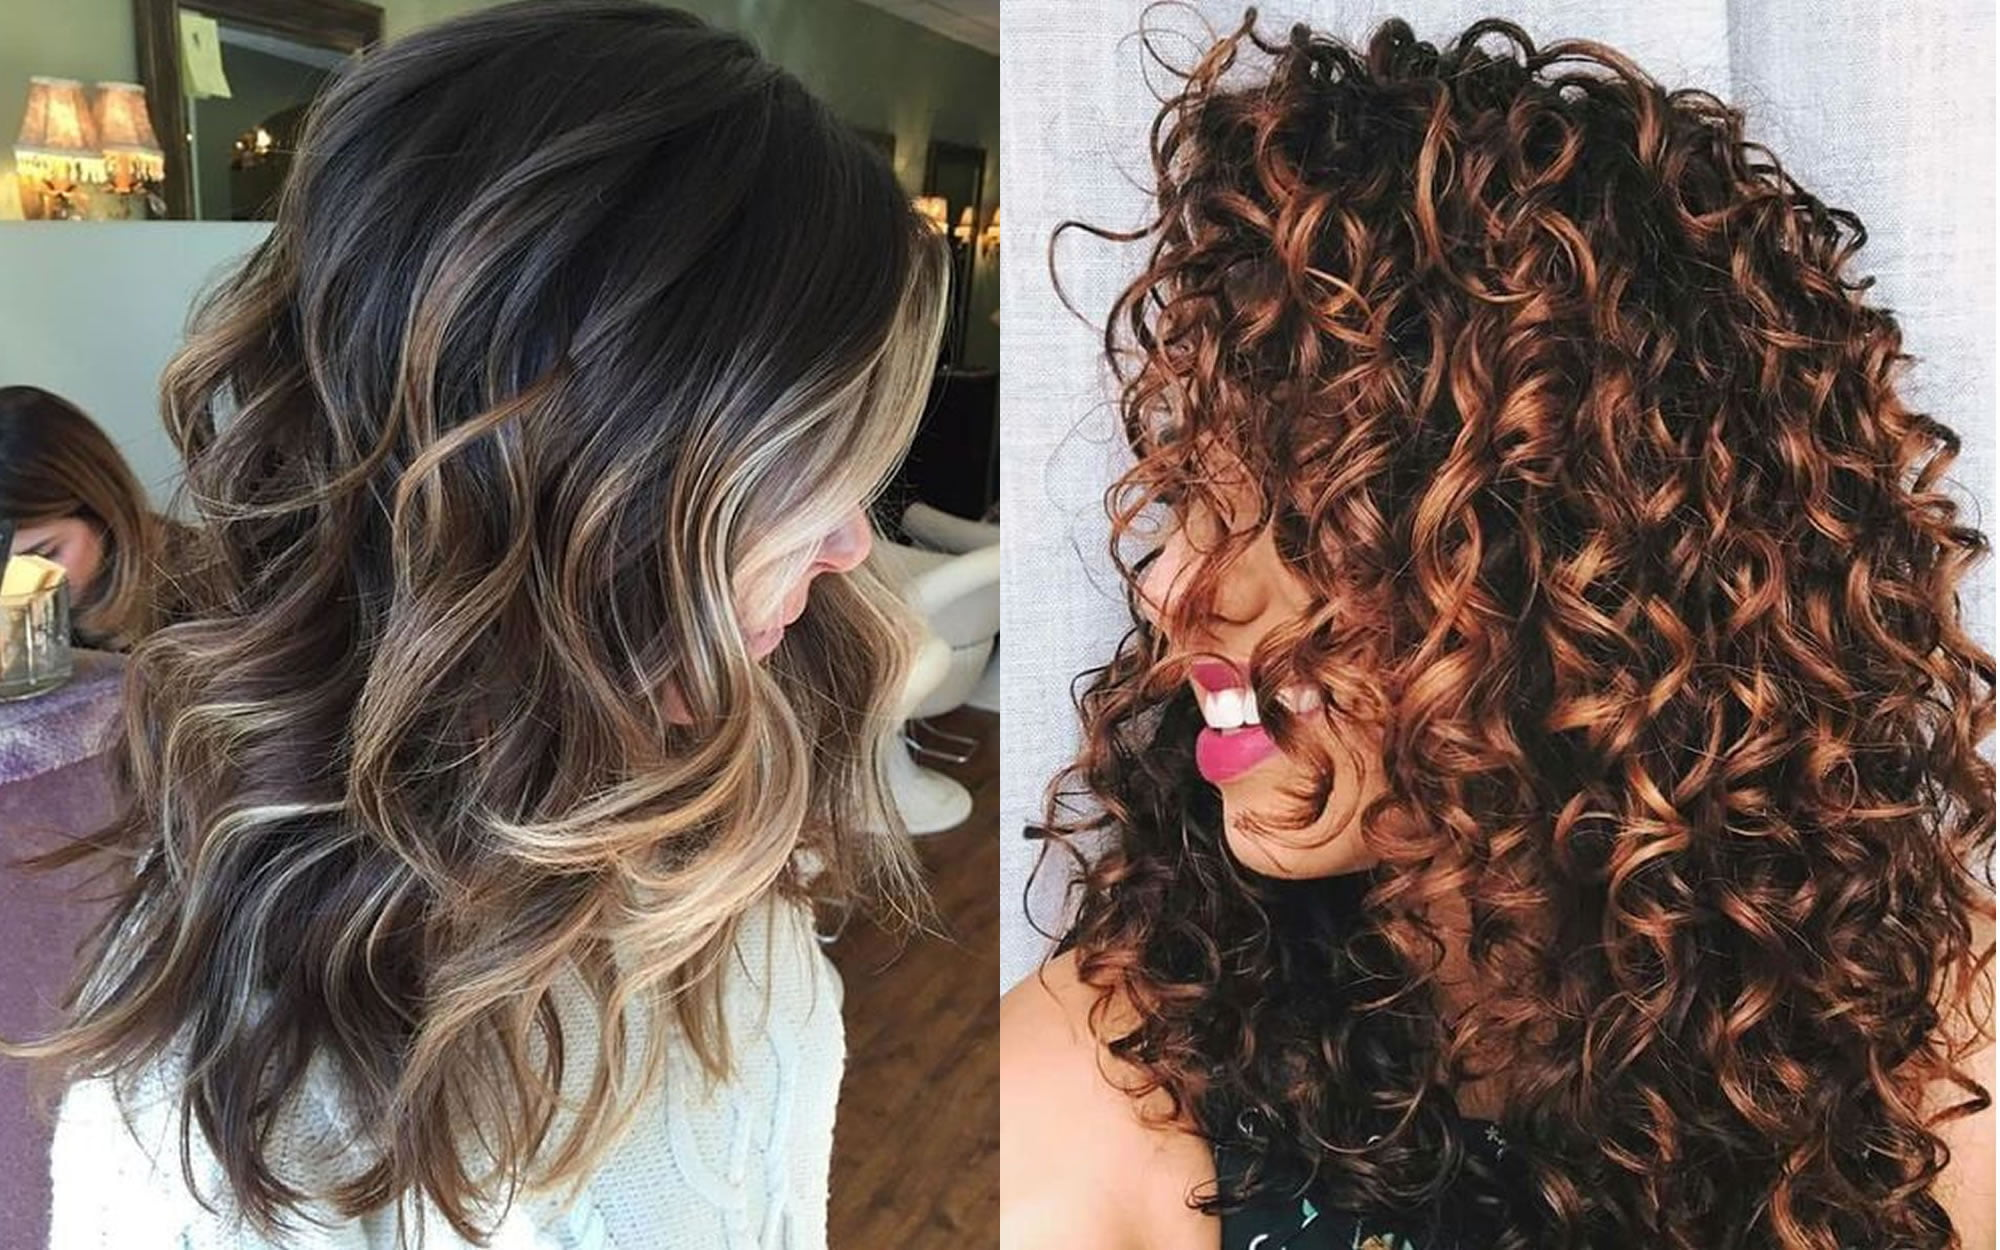 2019 Hairstyles And Colors: Latest Curly & Wavy Haircuts For